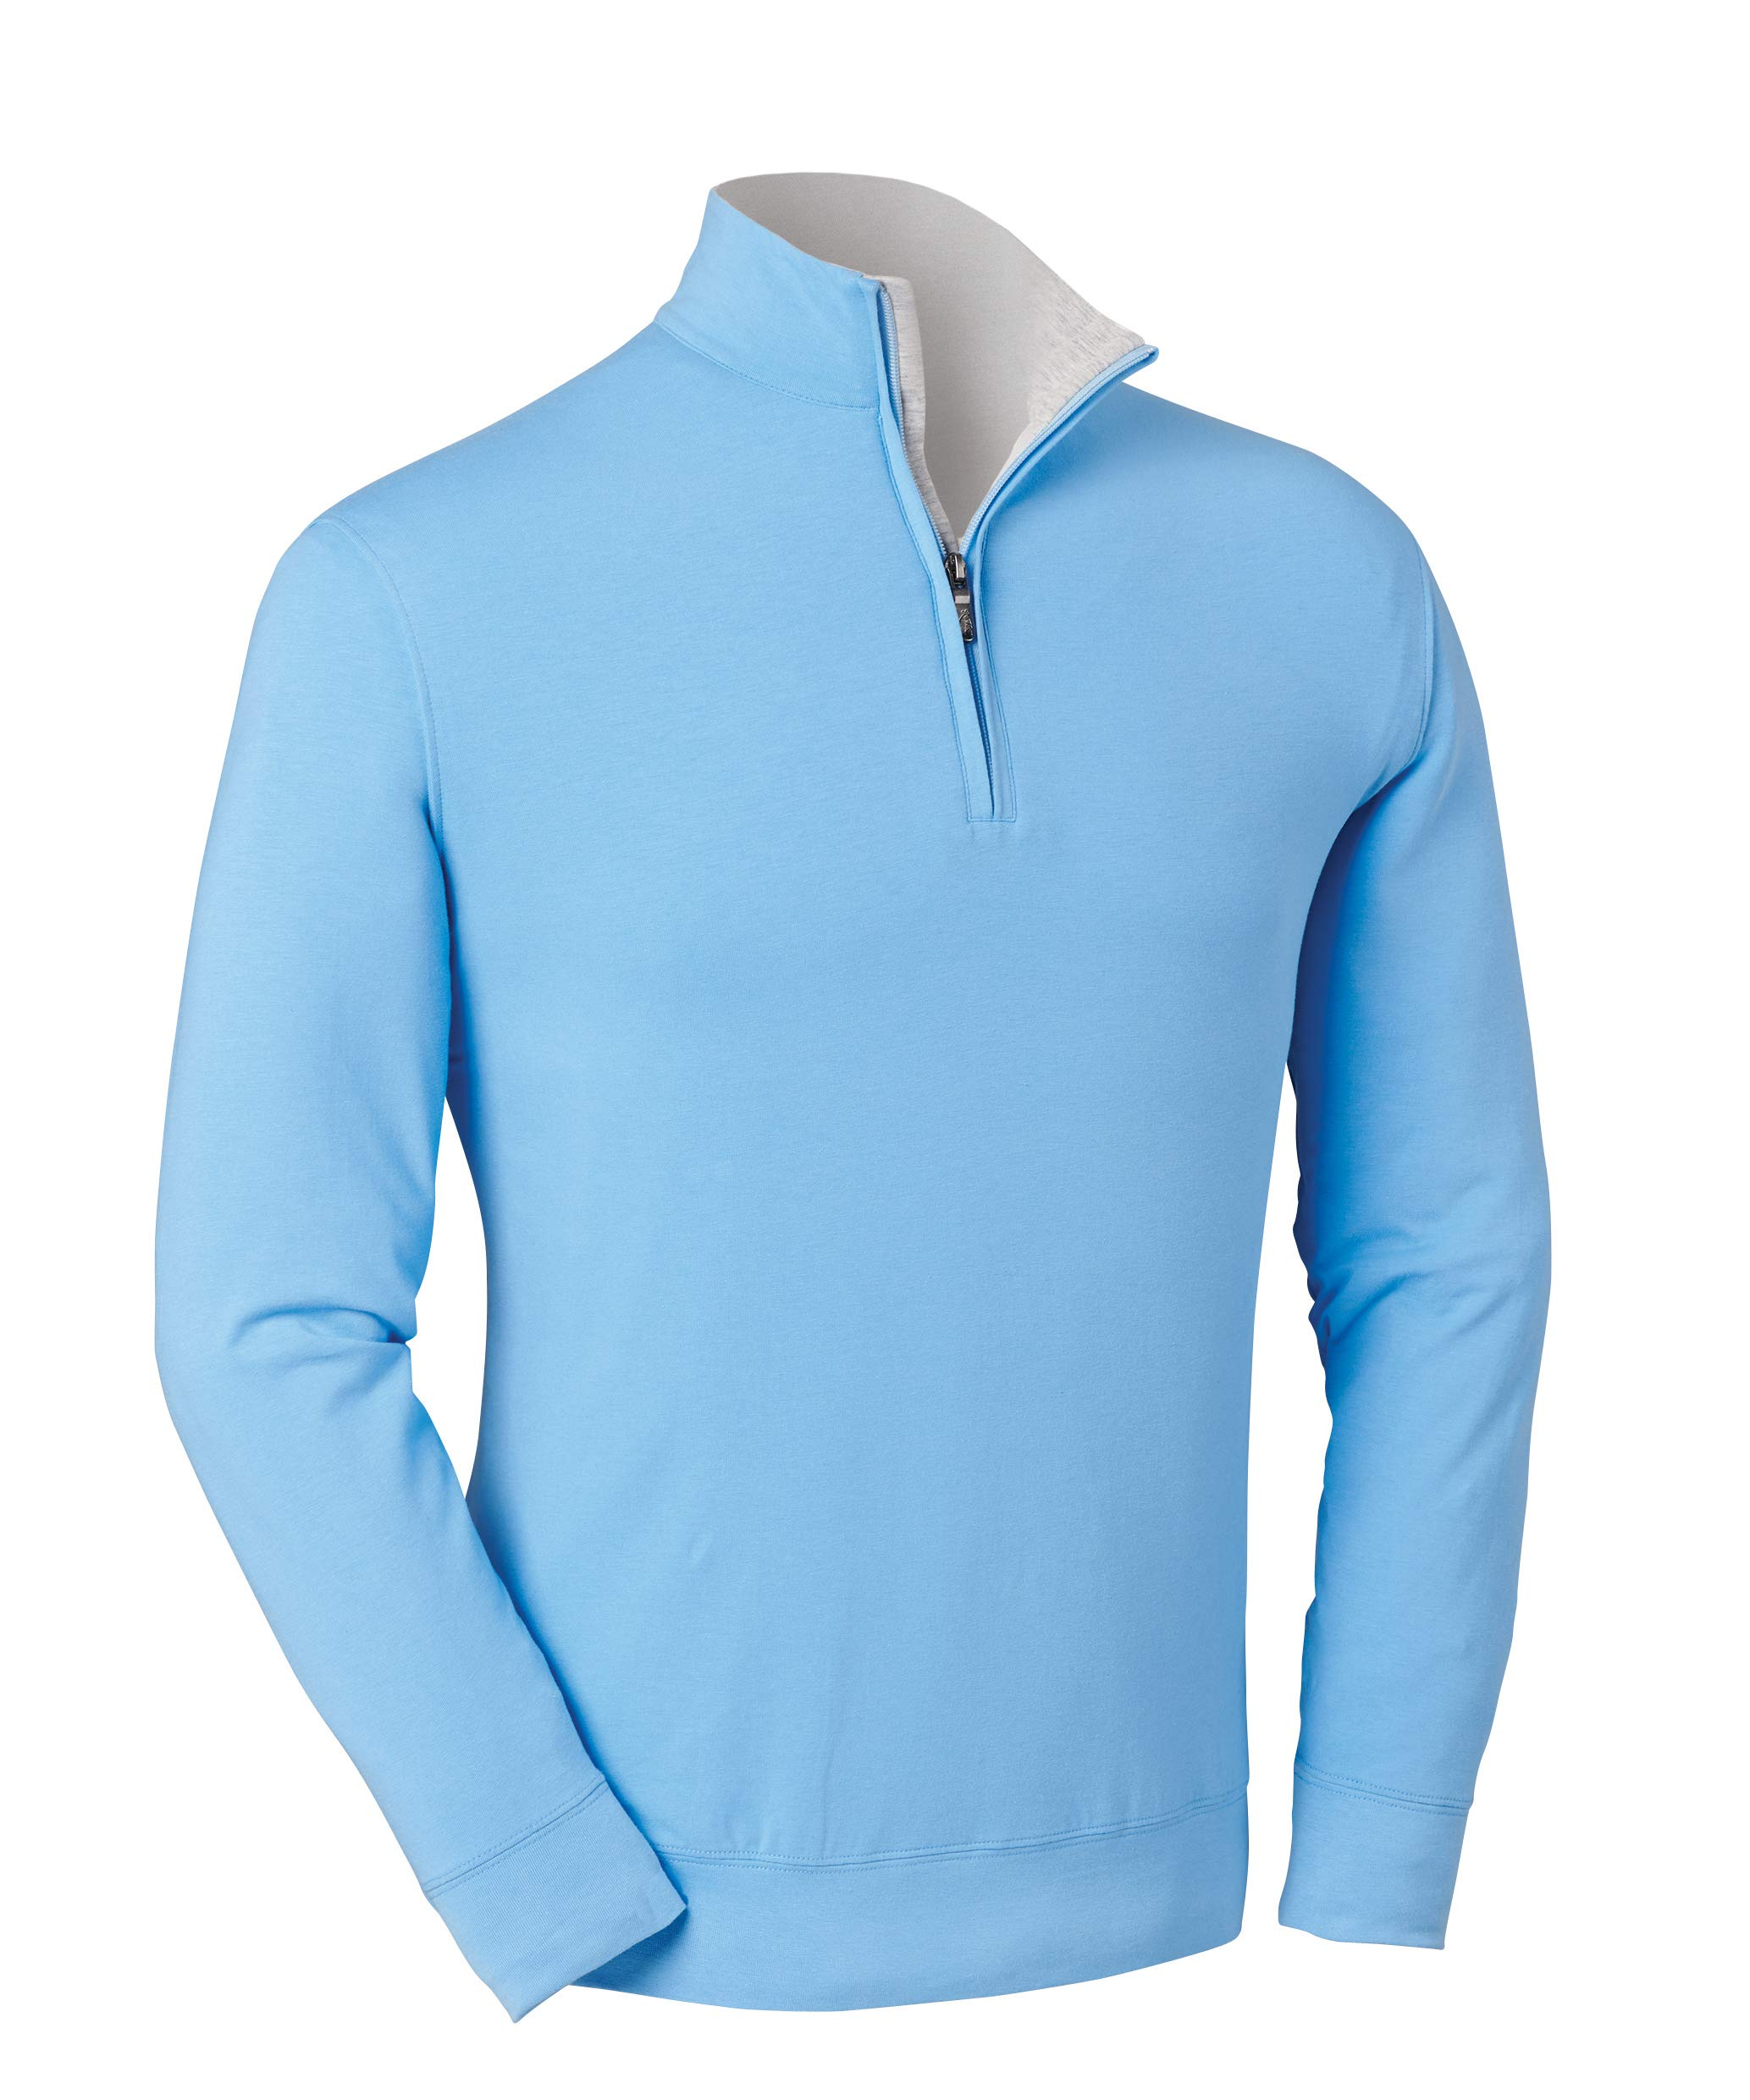 Bobby Jones Liquid Cotton Stretch Golf Pullover - Men's 1/4 Zip Pullover Golf Apparel Sky Blue by Bobby Jones